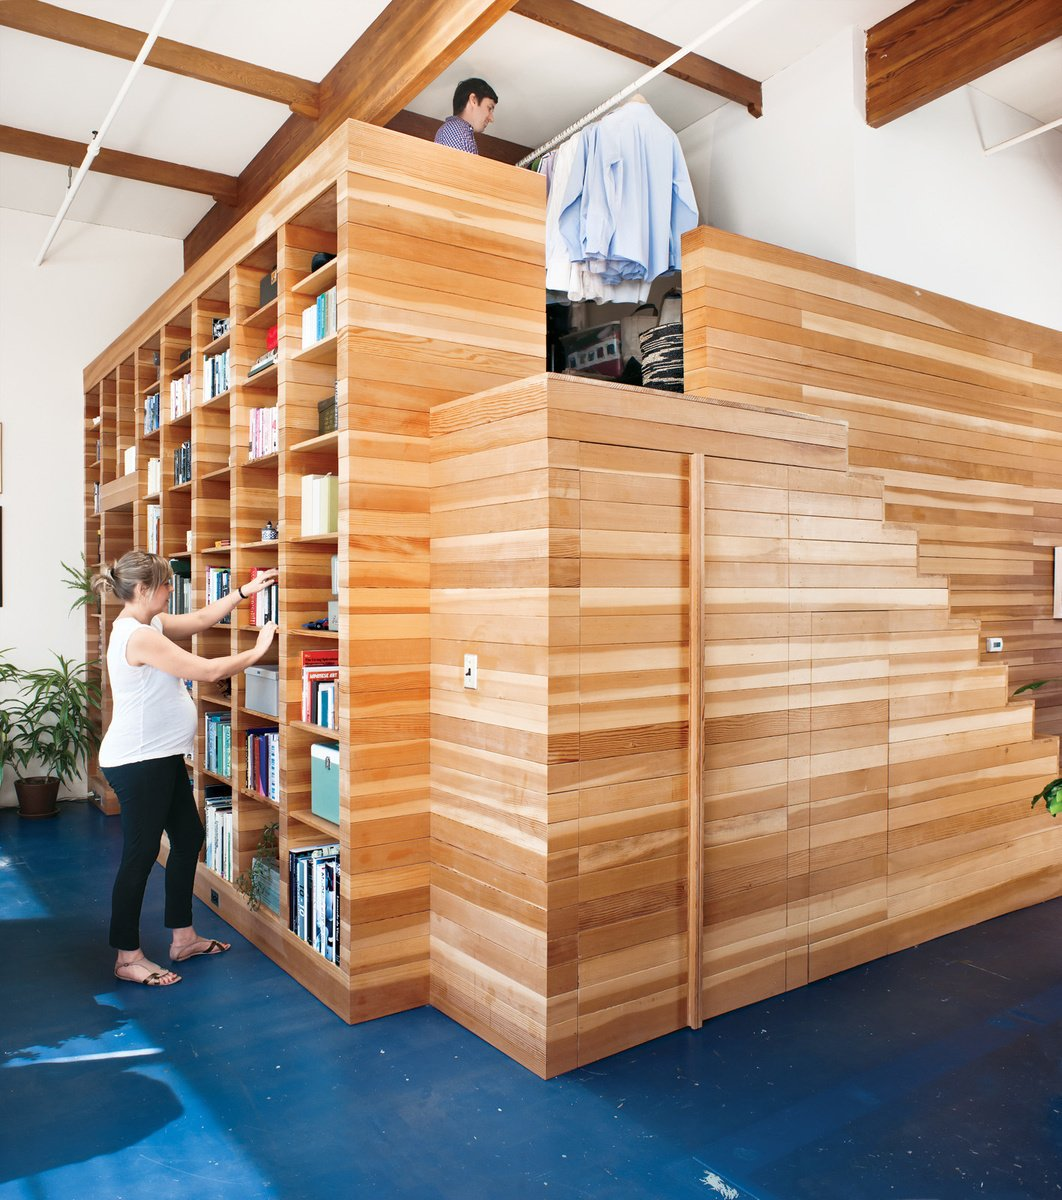 California homeowners Lynda and Peter Benoit designed a functional wooden structure to store books, keepsakes, and clothes. Photo by: Drew Kelly